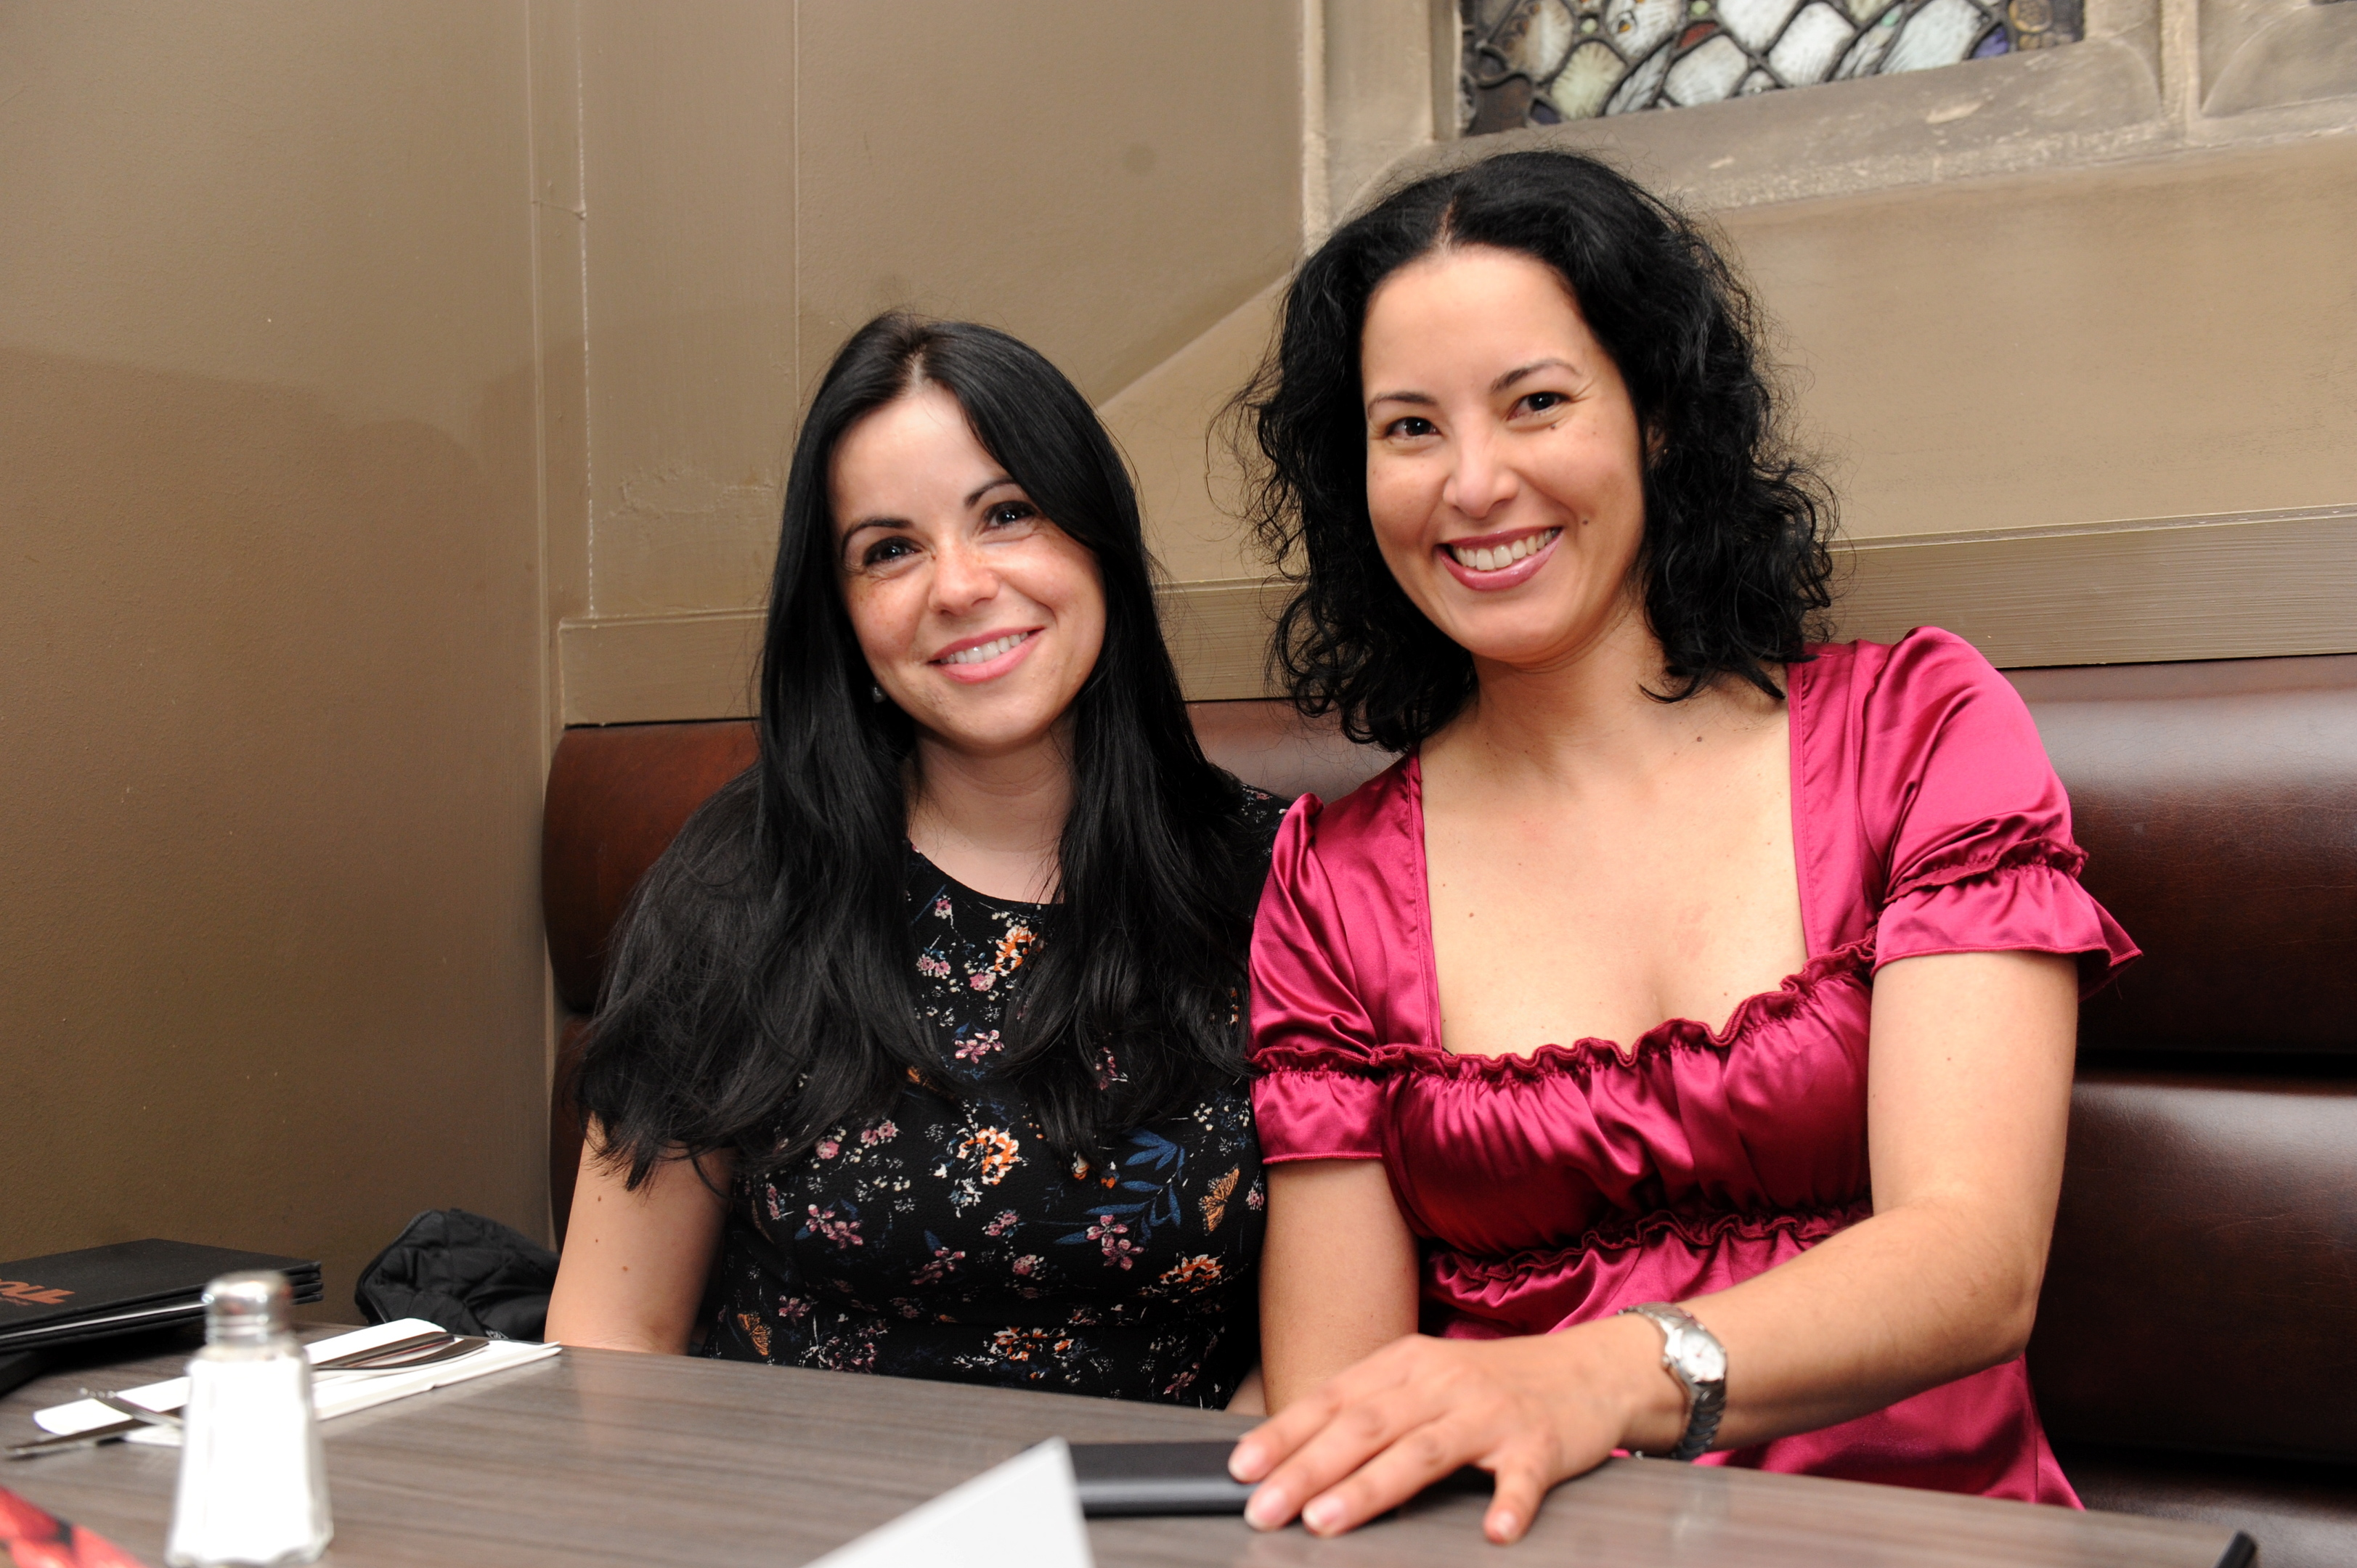 Soul Bar: Sonia Selim and Maria Selim